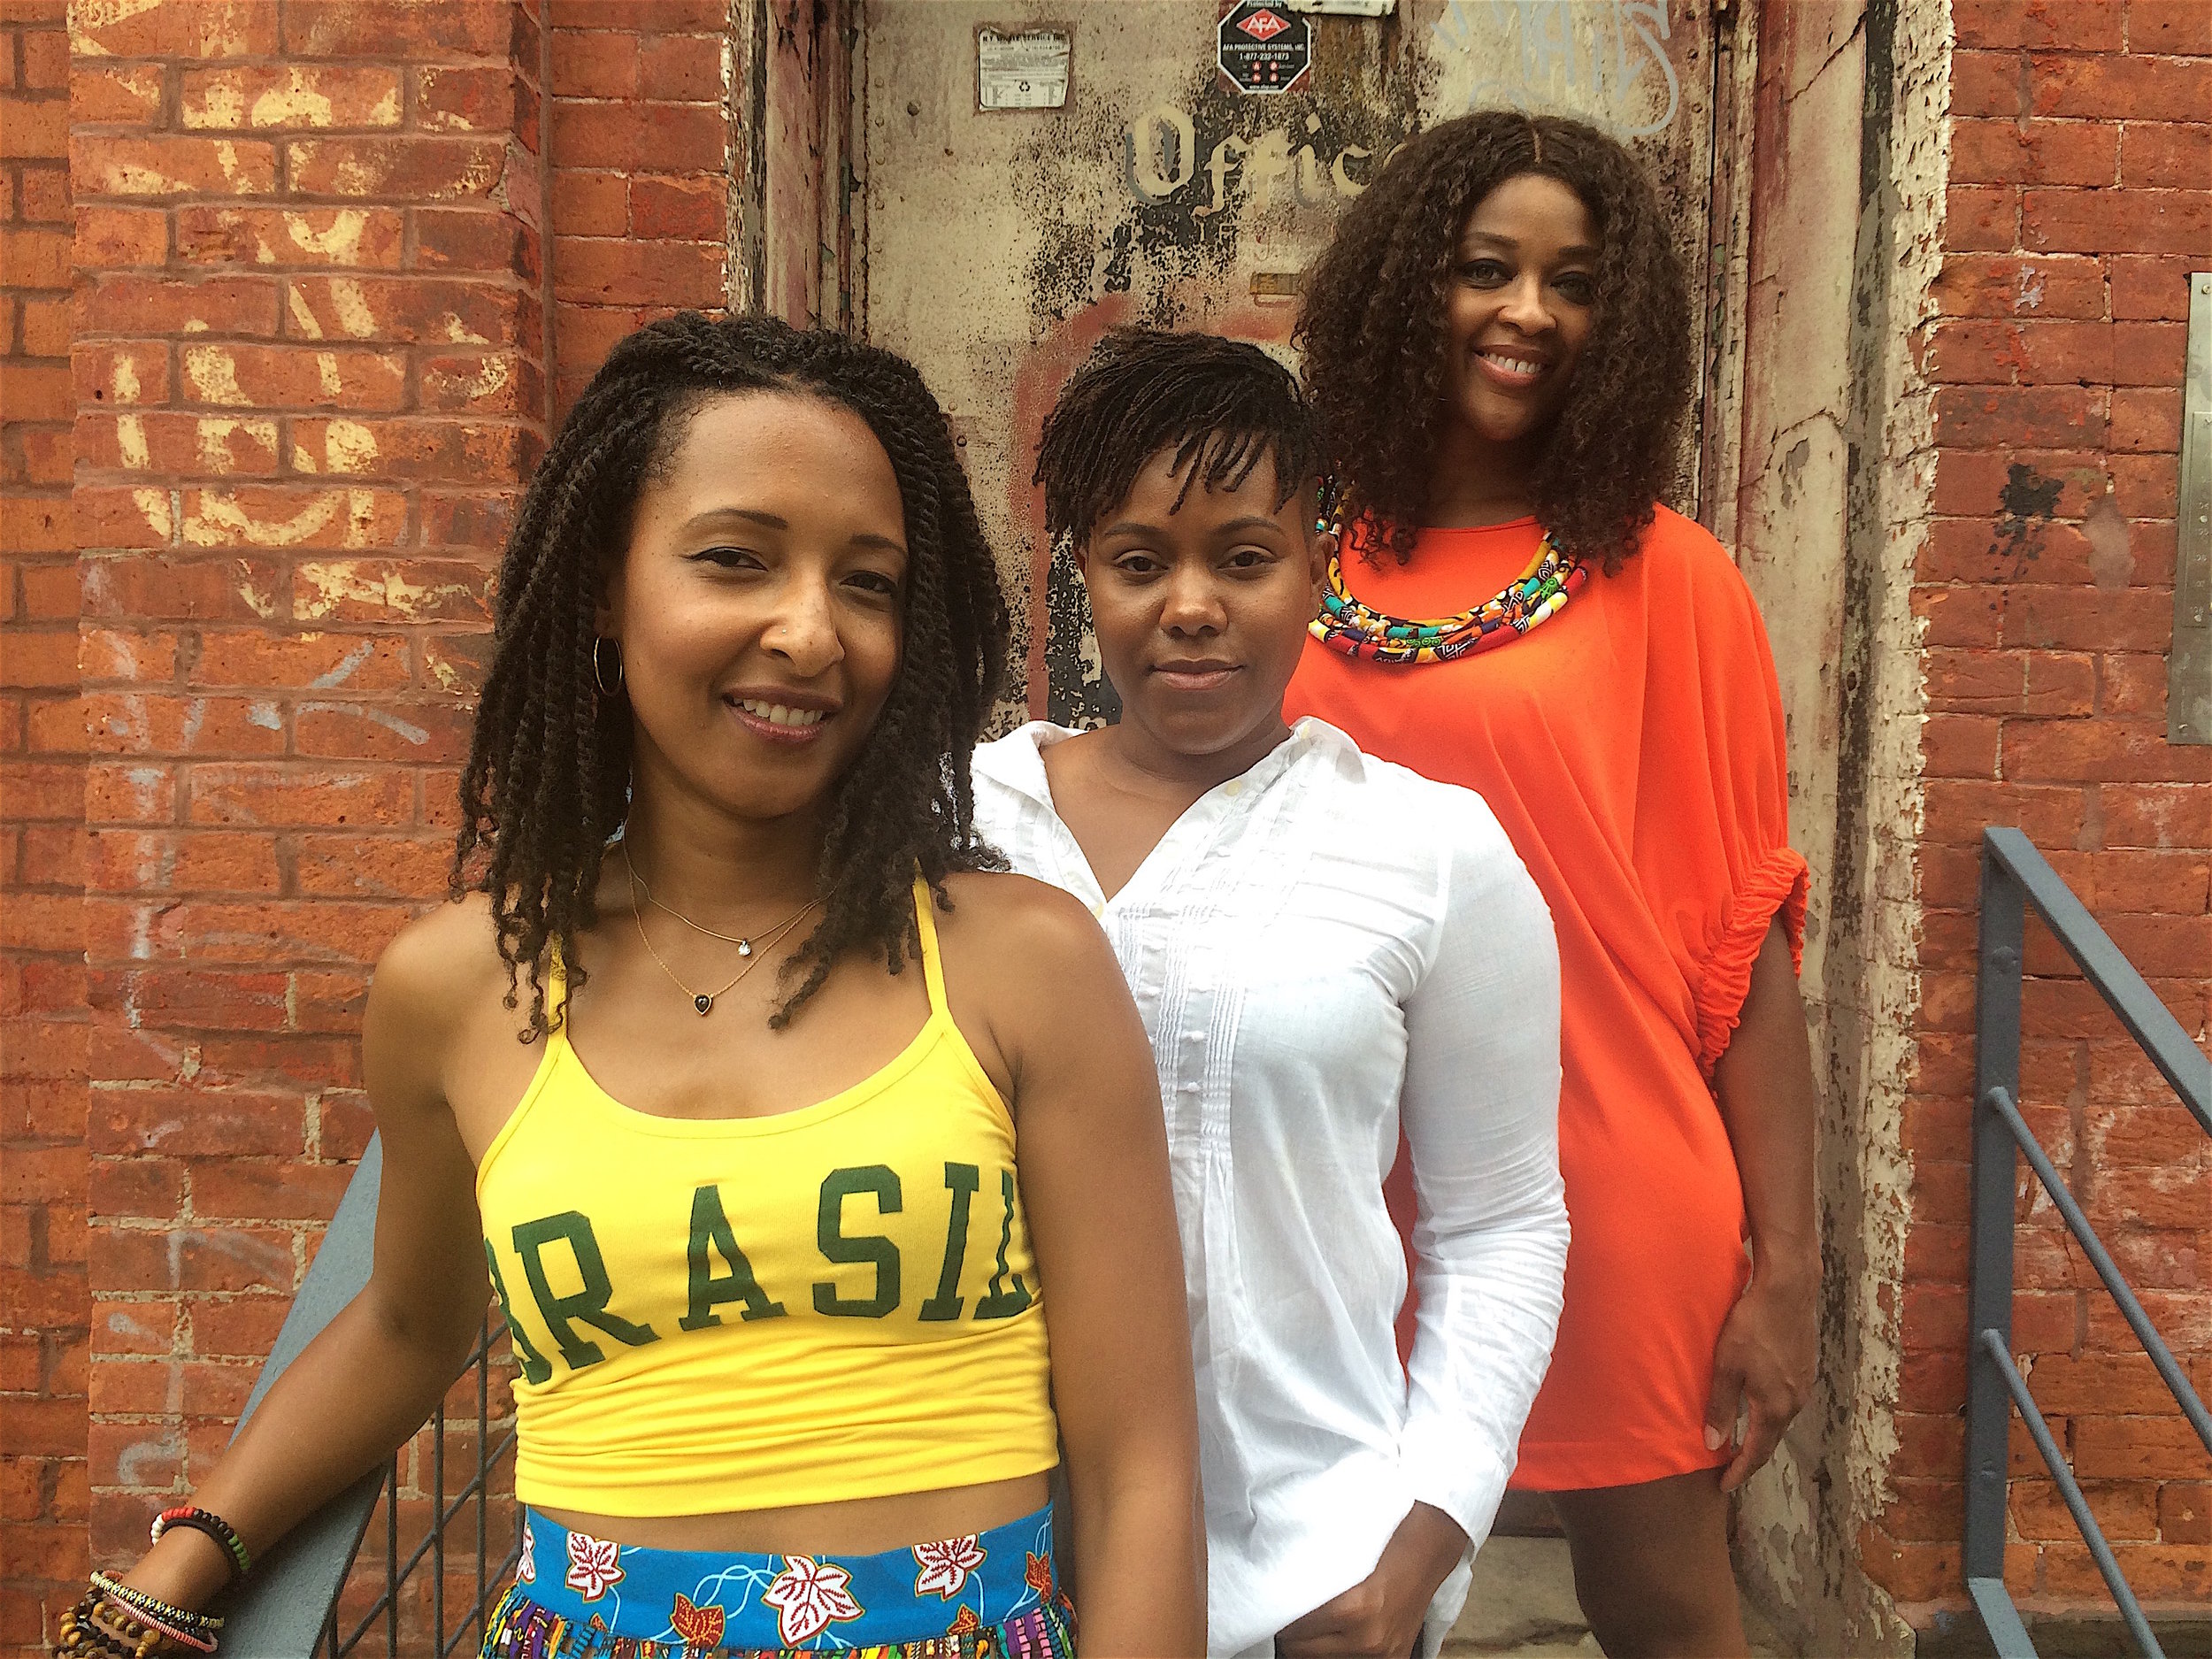 ABOUT - TEXTURES is a collaborative project created by three black girls from the so-called